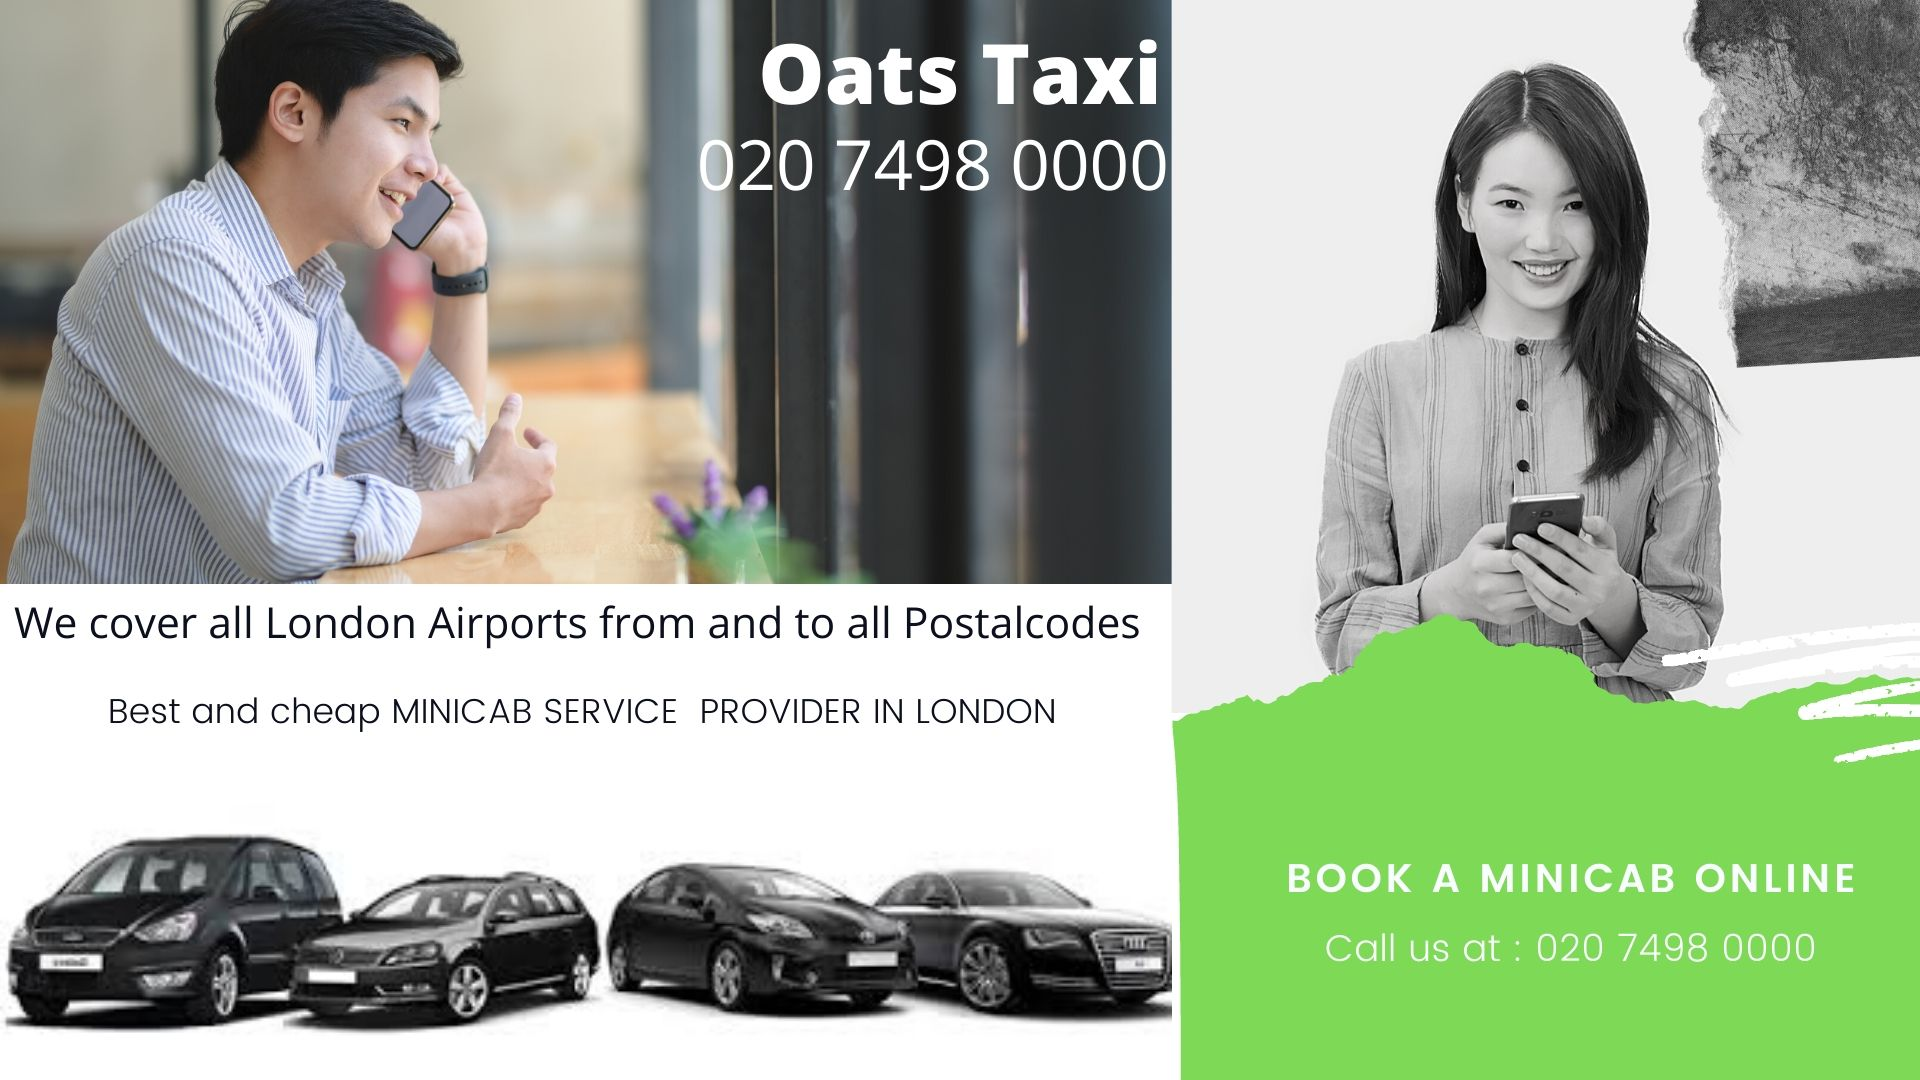 Nearest Taxi Office in Putney Vale | Gatwick Airport | Call now : 02074980000